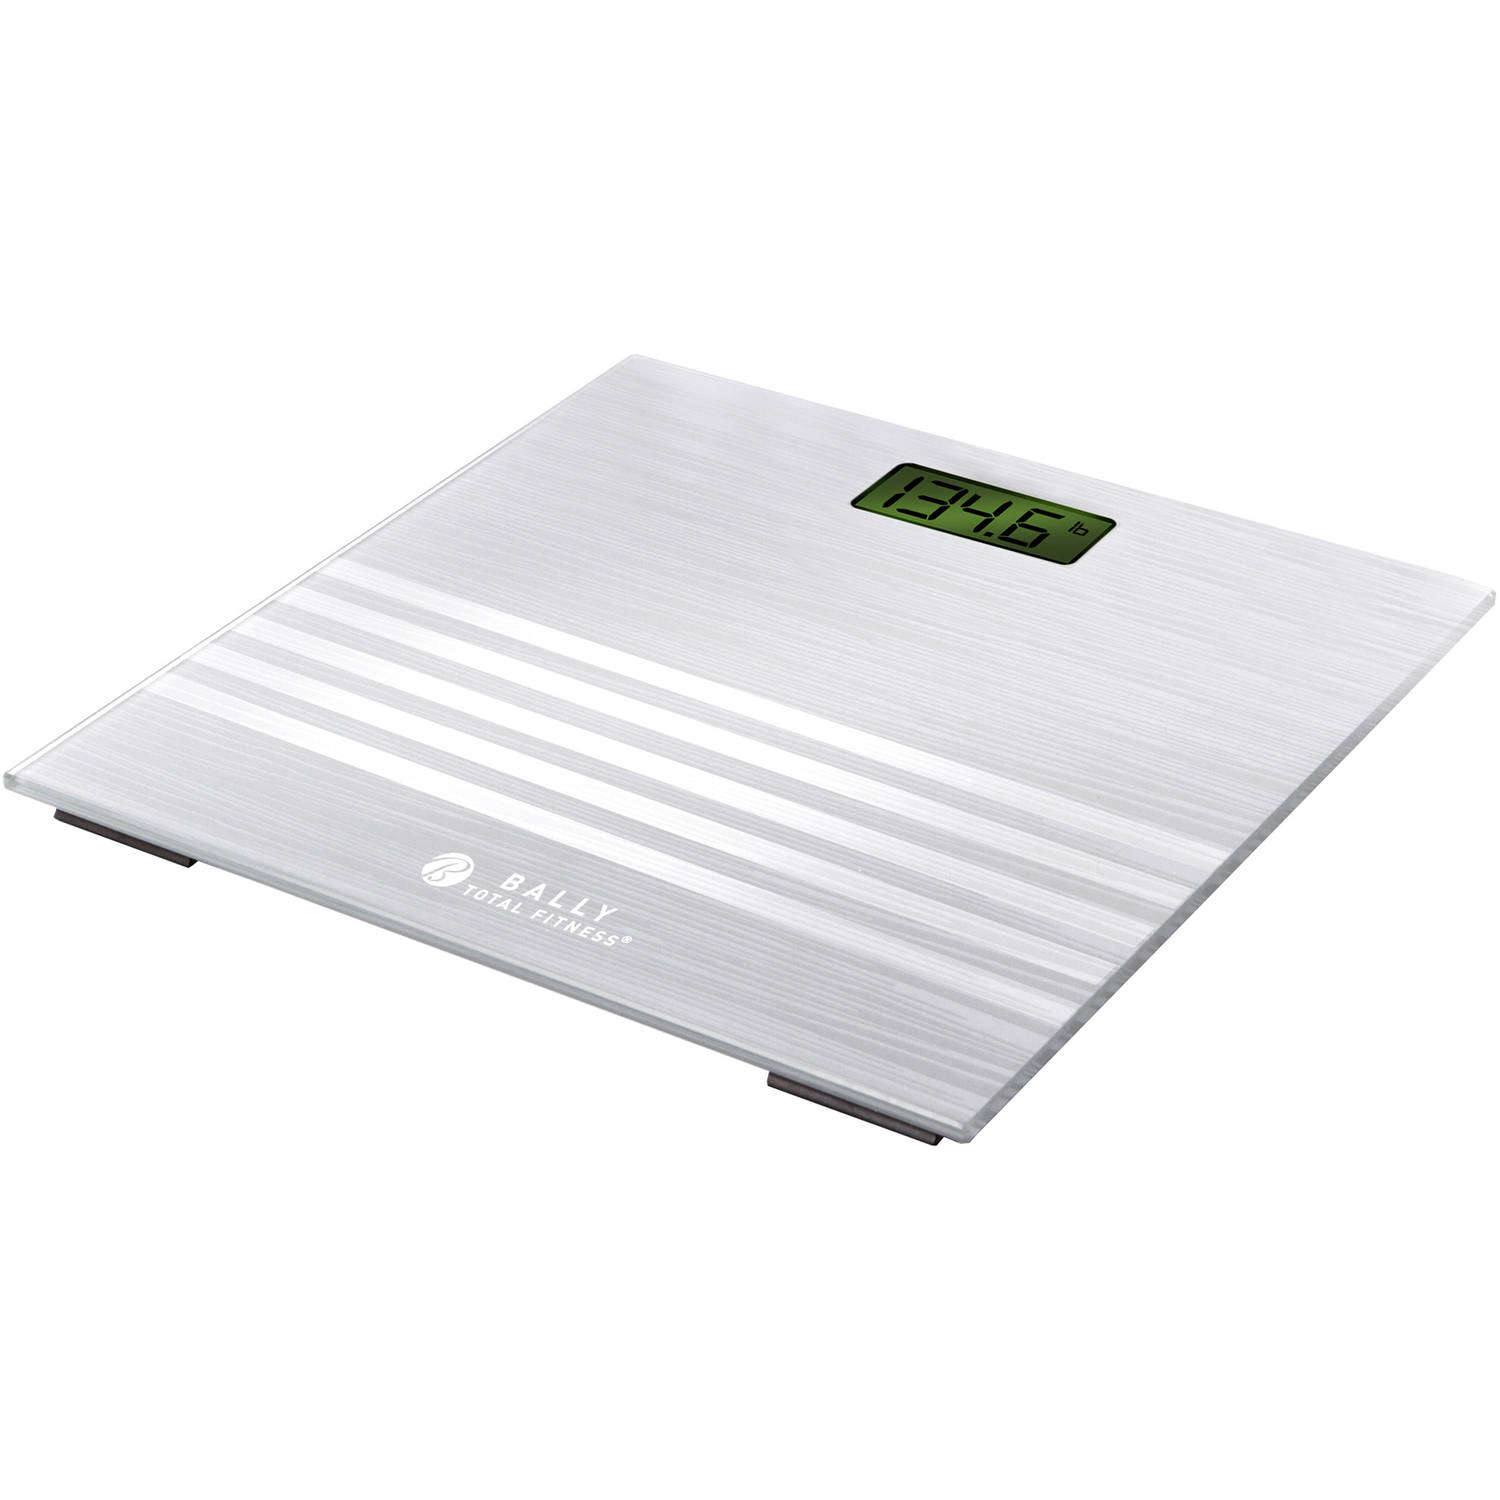 bathroom scale walmart.  Bally Digital Bathroom Scale Silver Walmart com